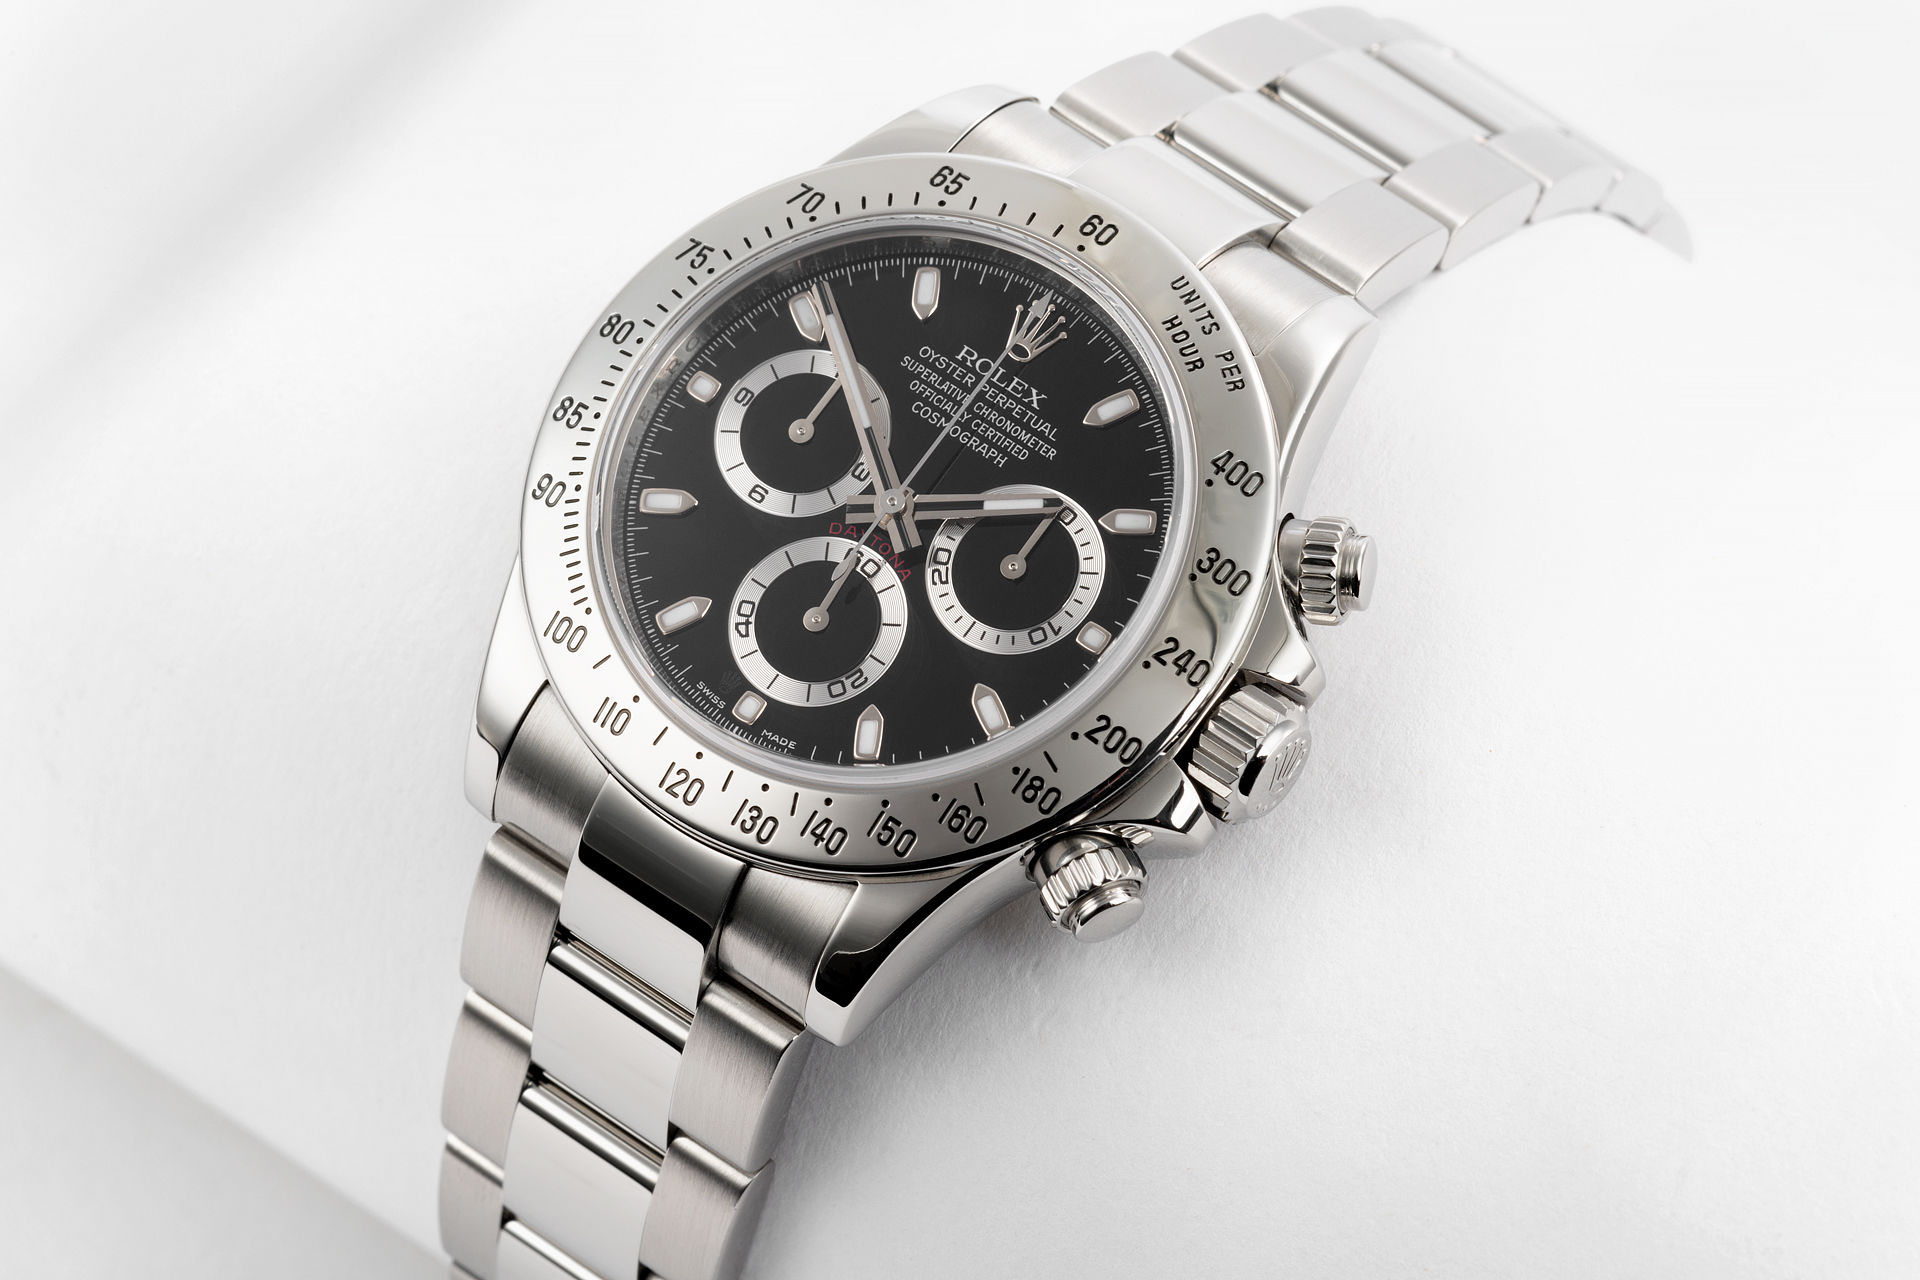 ref 116520 | Box & Papers | Rolex Cosmograph Daytona